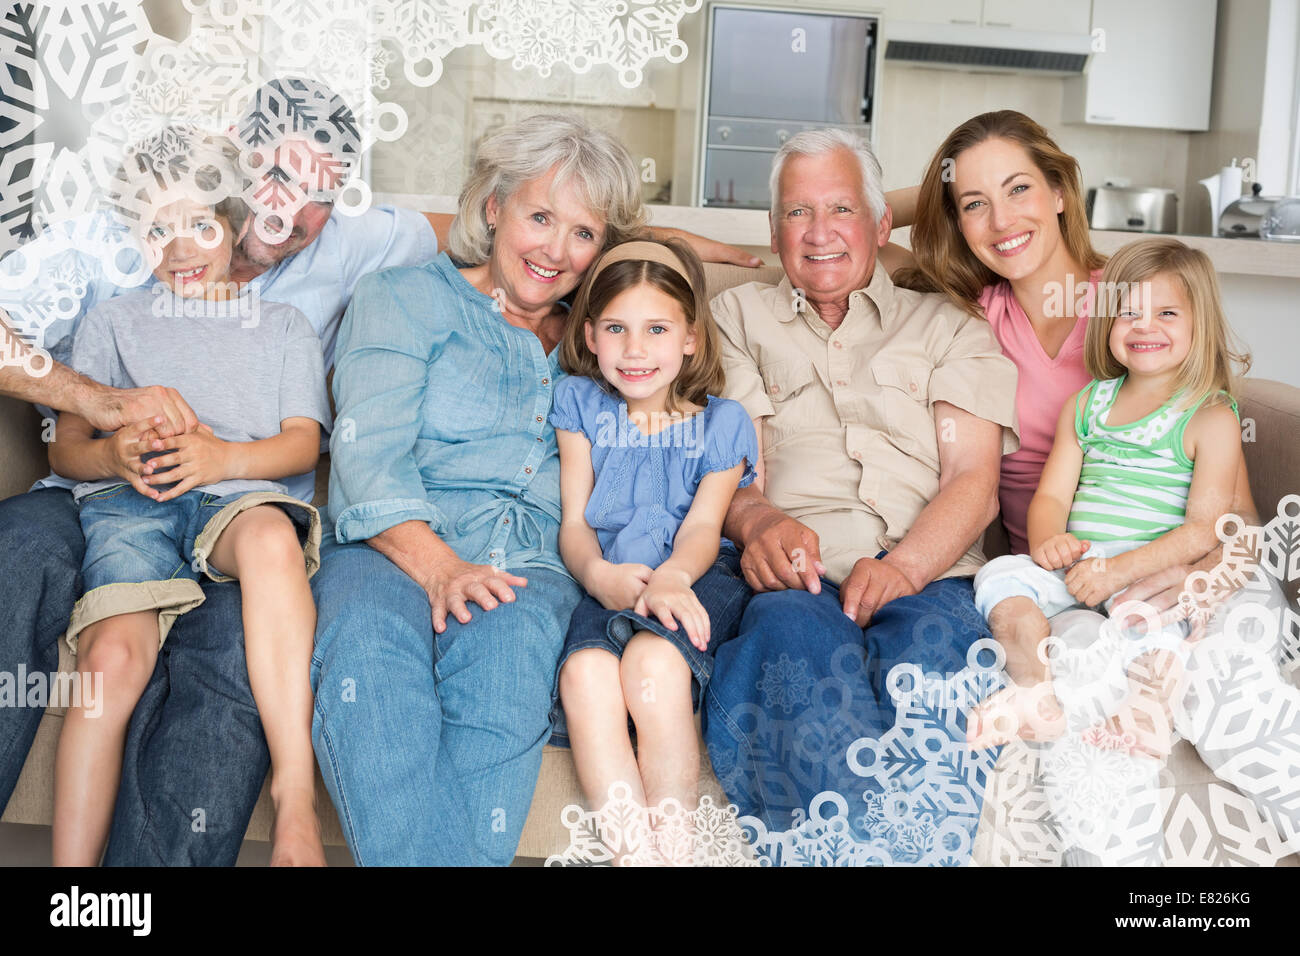 Composite image of family spending leisure time - Stock Image